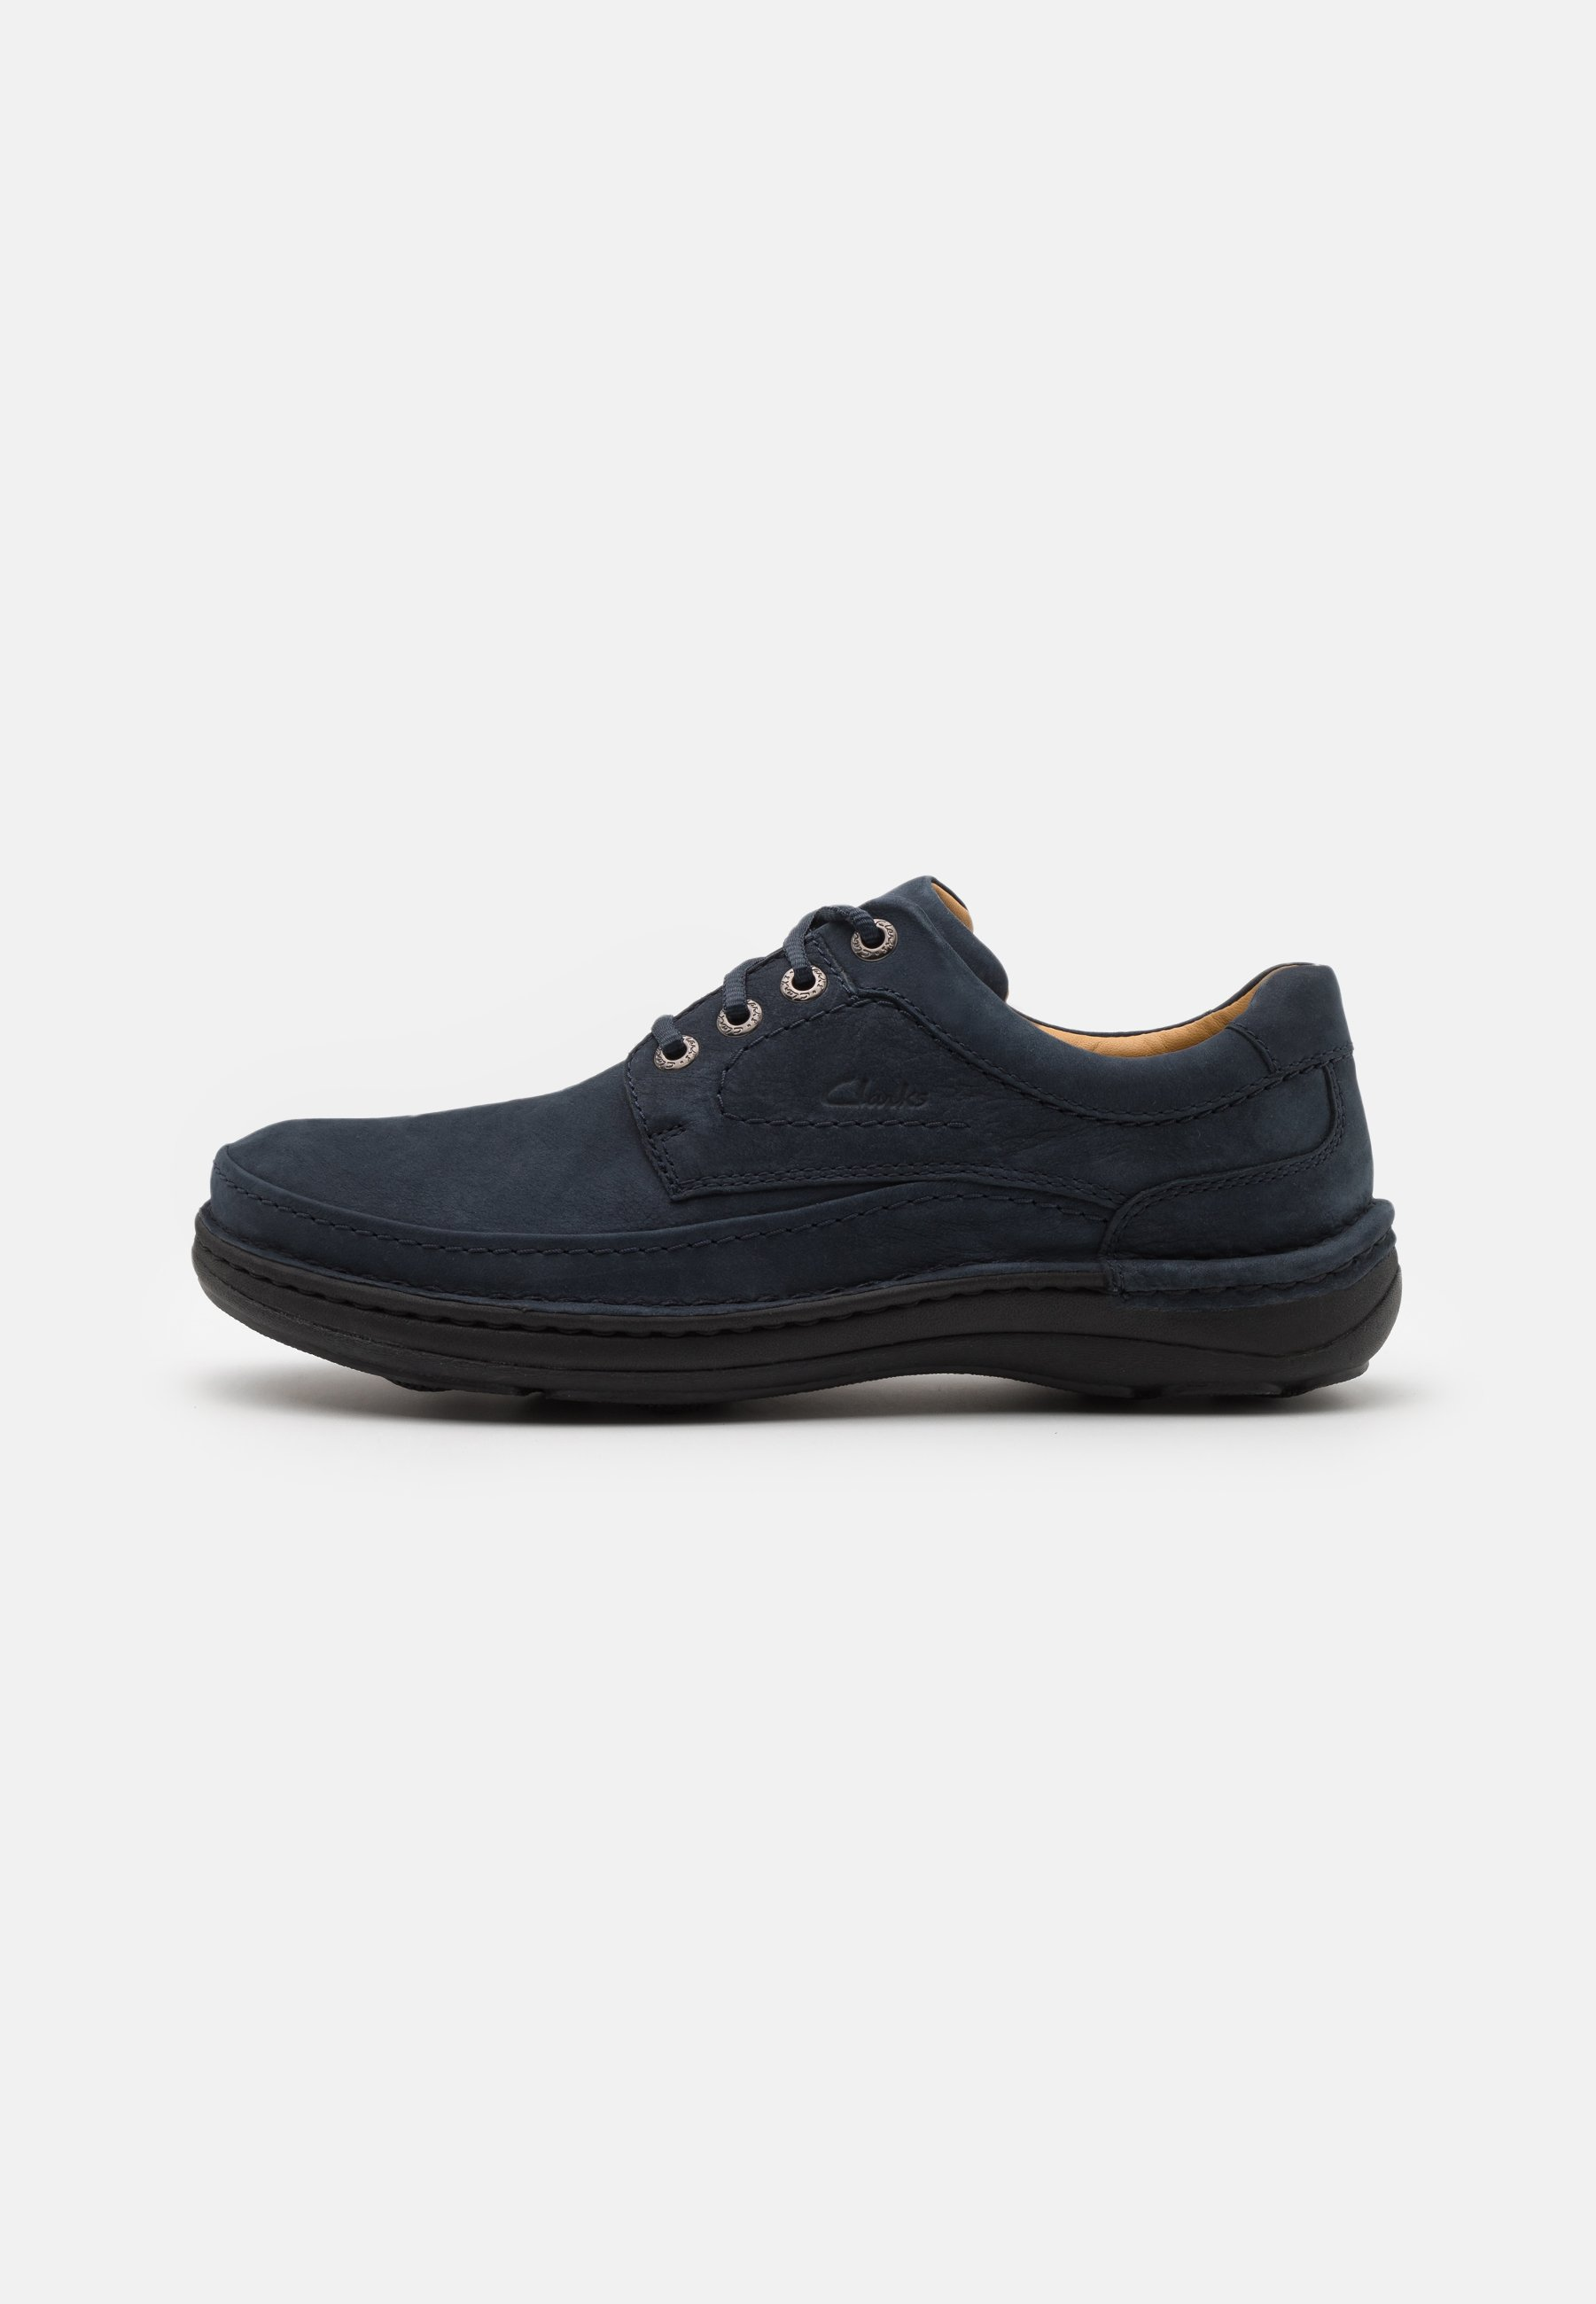 Homme NATURE THREE - Chaussures à lacets - navy